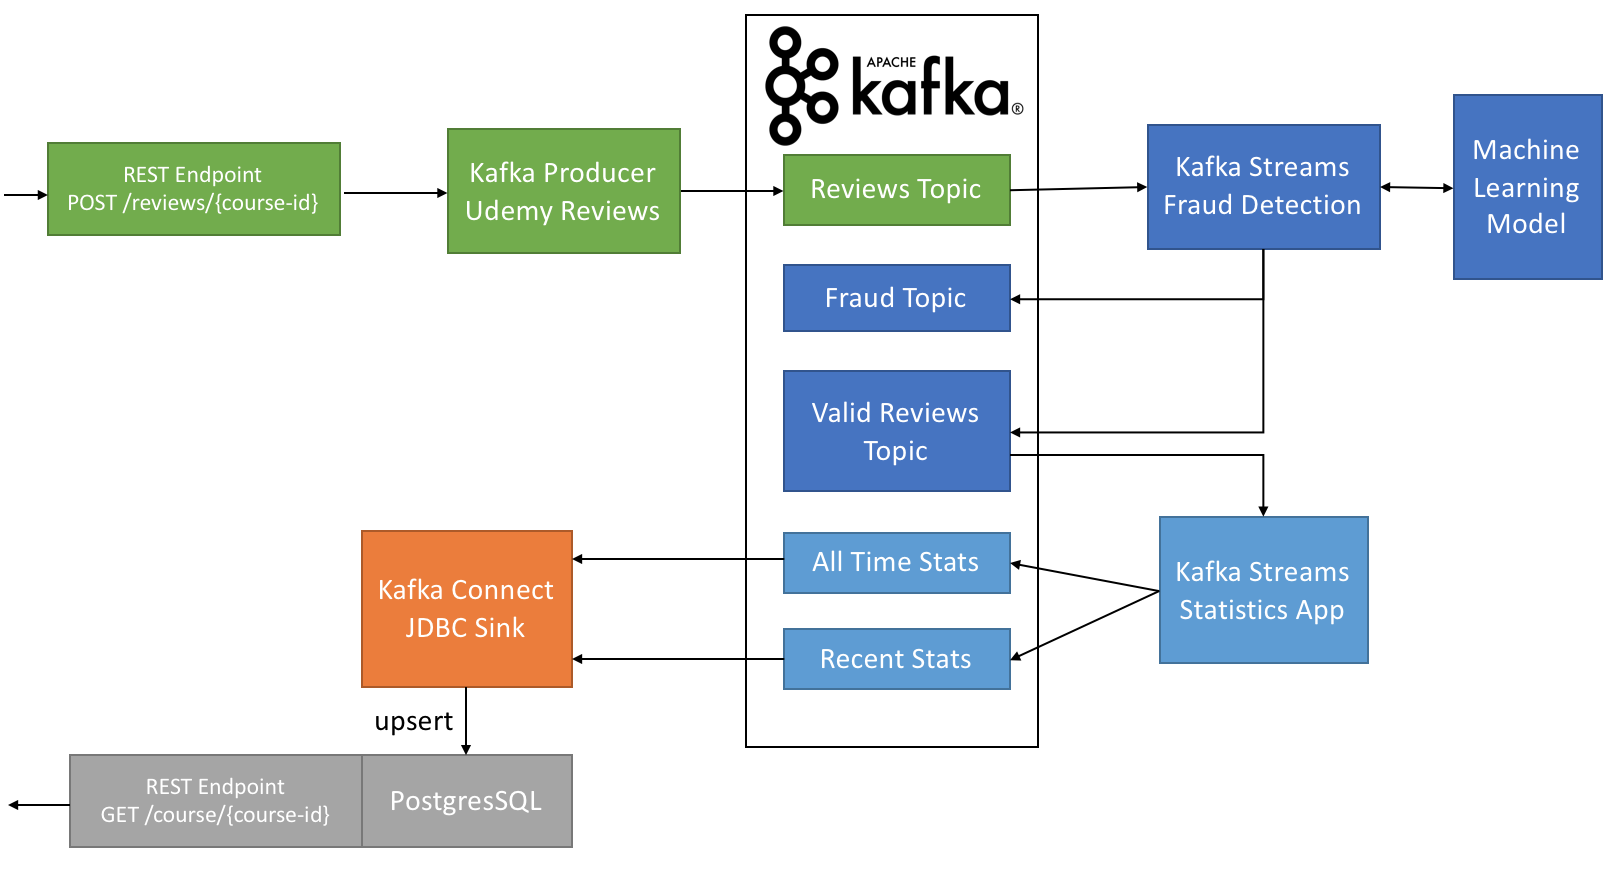 How To Use Apache Kafka Transform A Batch Pipeline Into Real Deliver More Current Connect An External Power Source And Time One